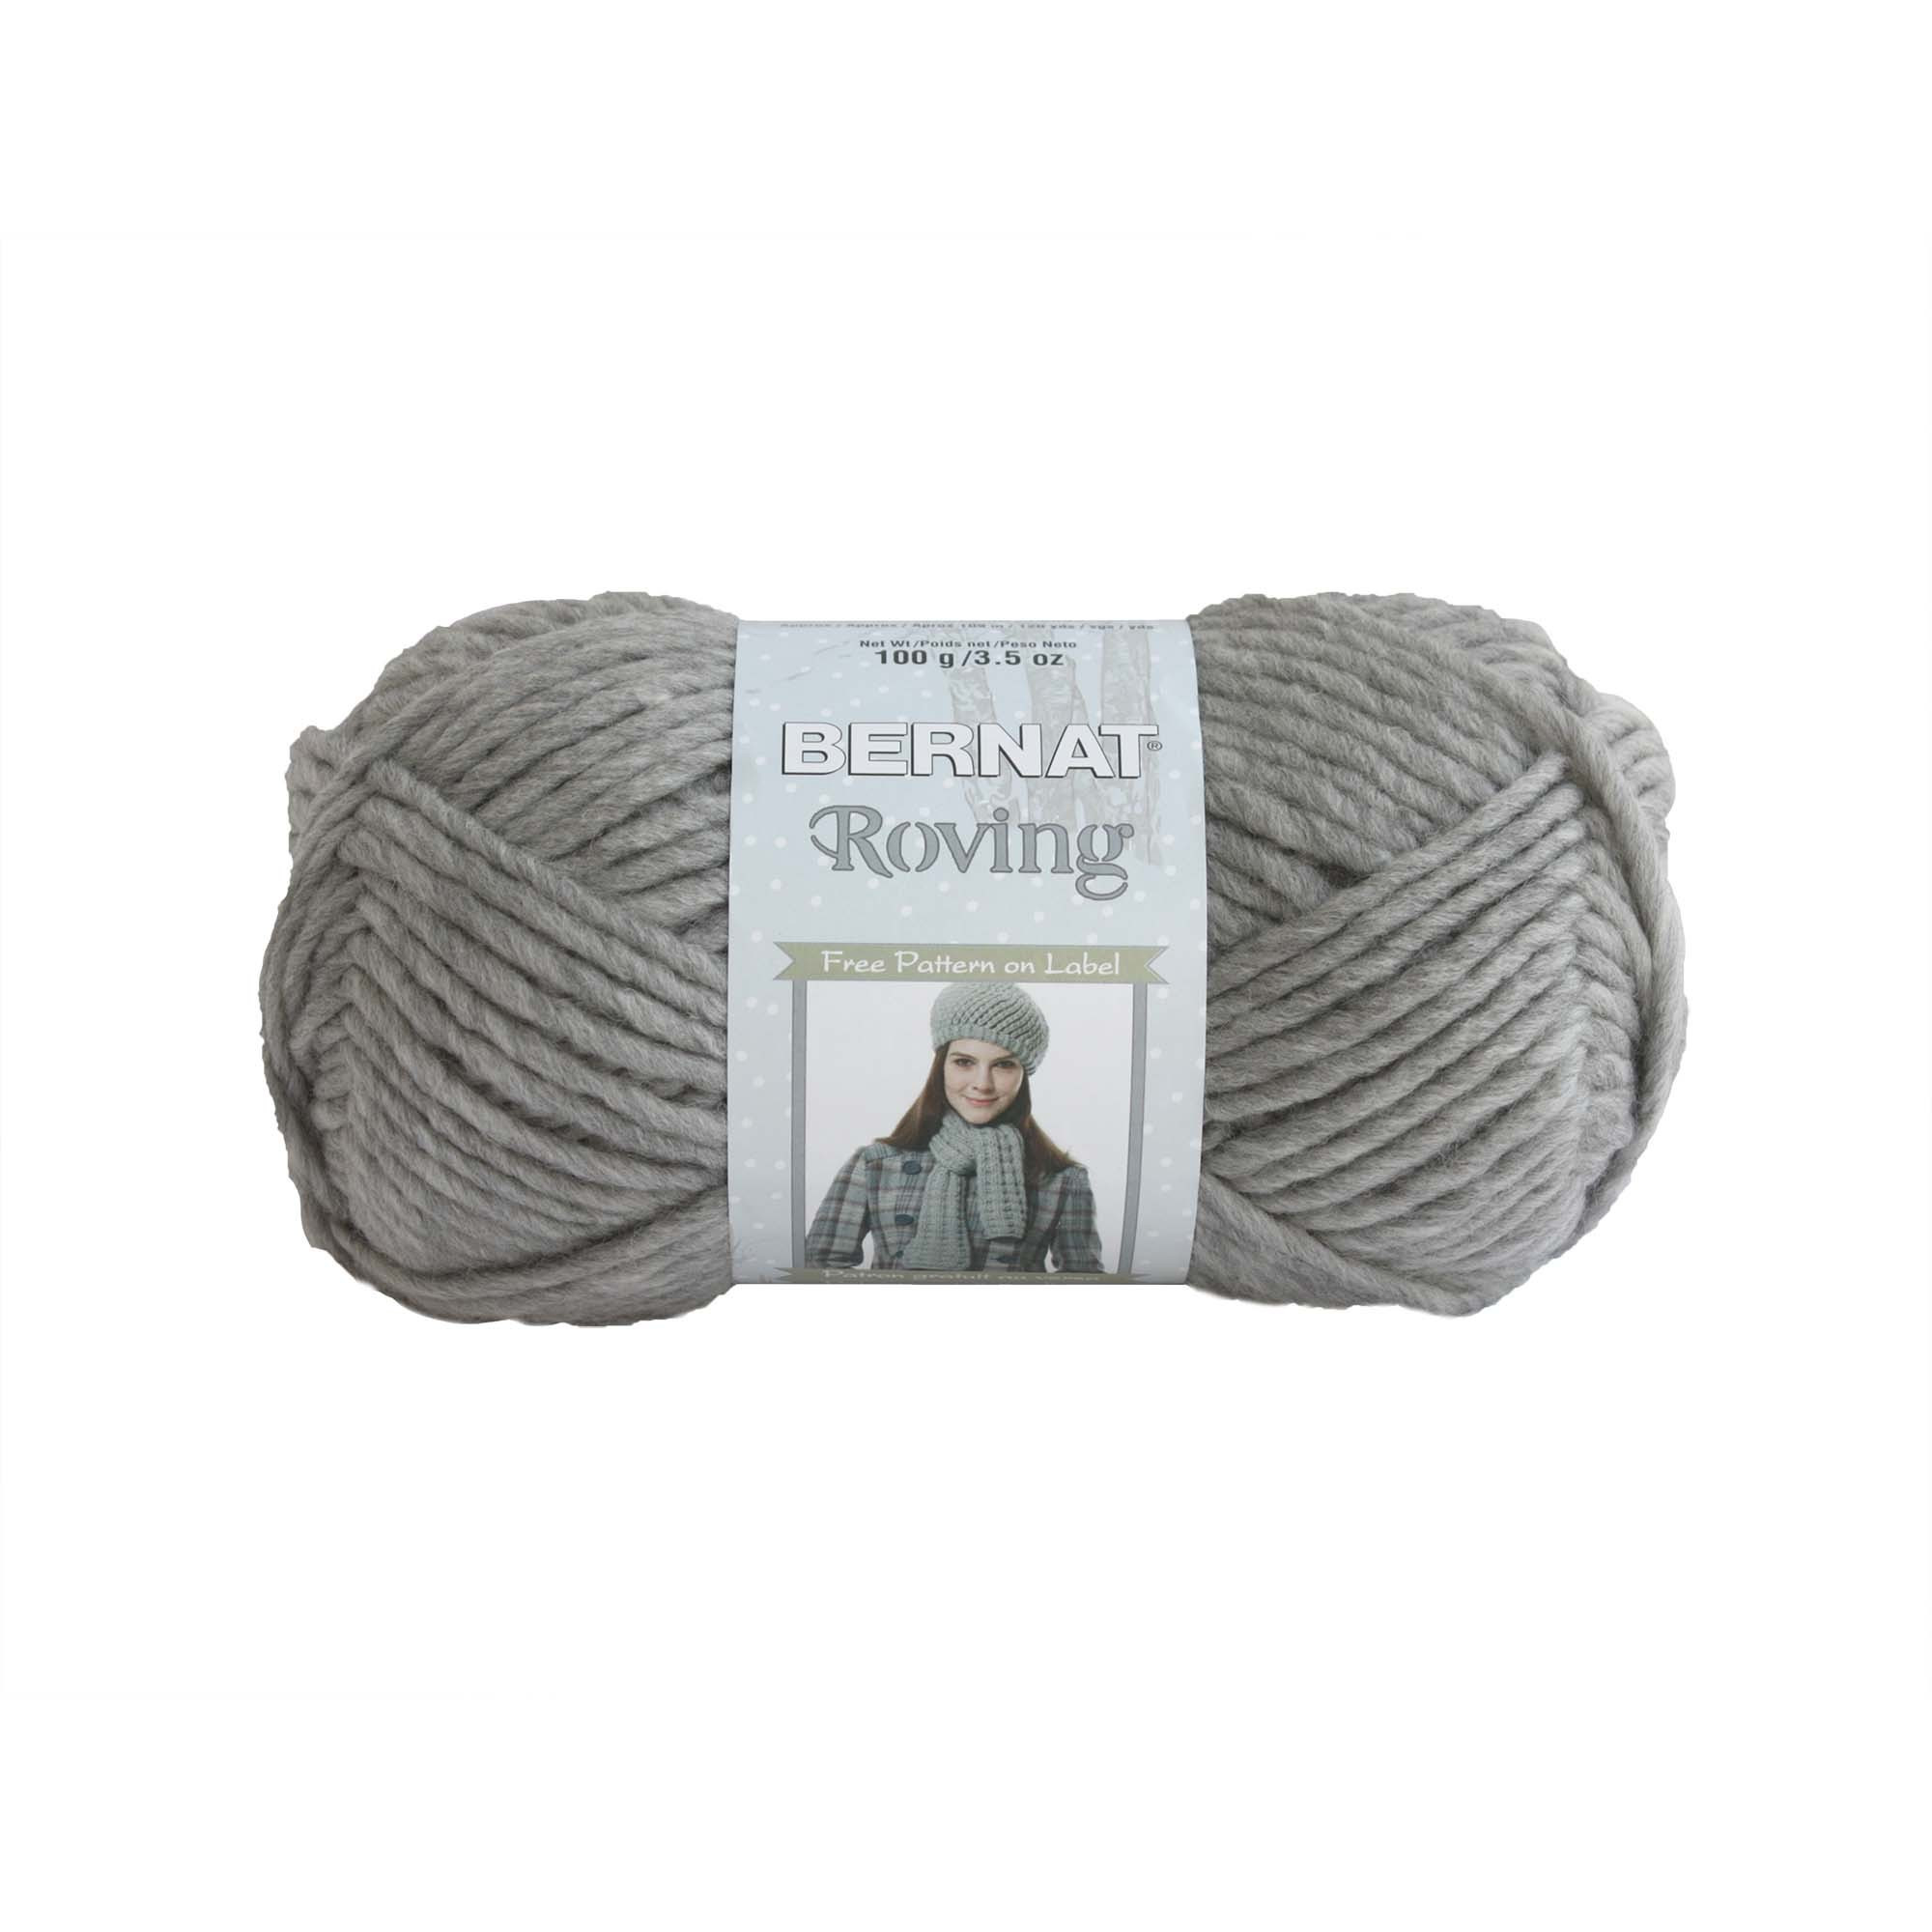 Bernat Roving Knitting Yarn 100g